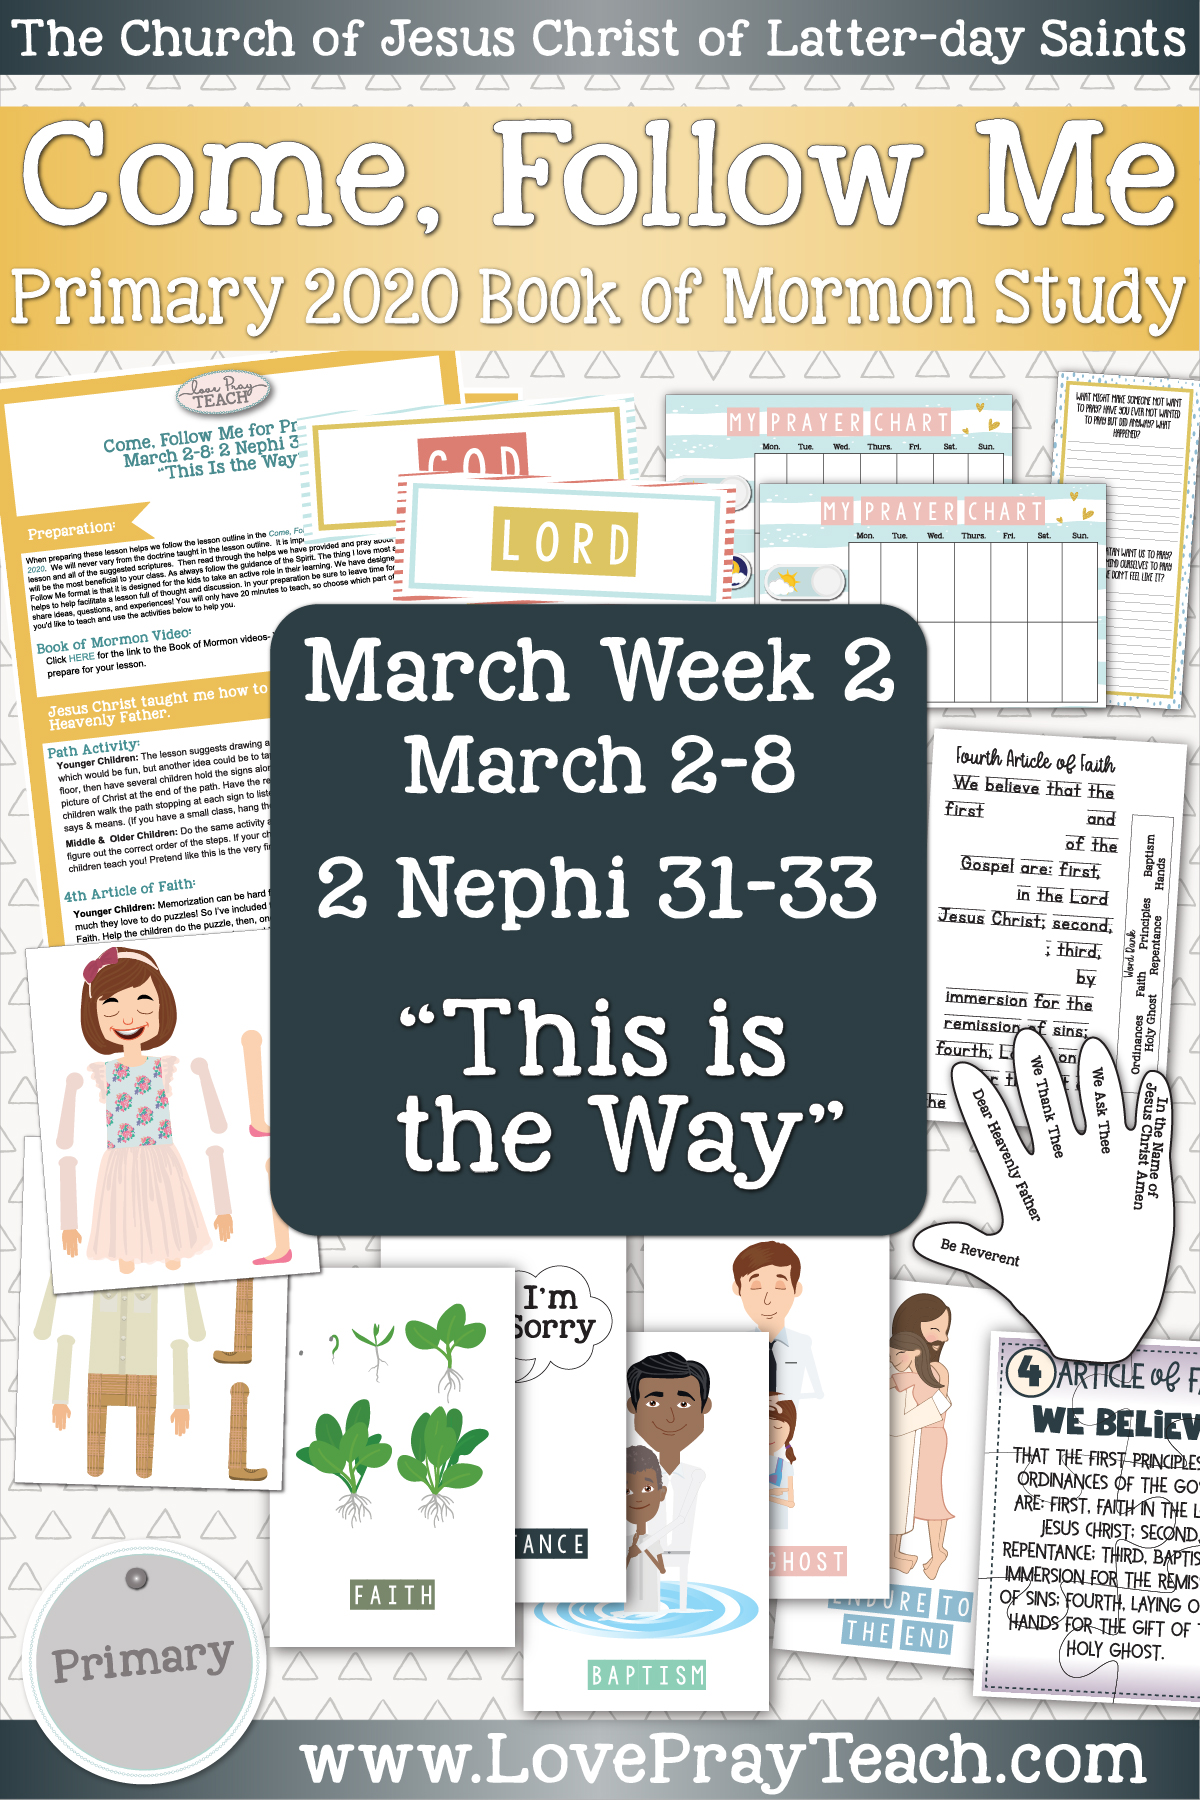 """Come, Follow Me for Primary March Week 2: March 2-8 2 Nephi 31-33 """"This is the Way"""" www.LovePrayTeach.com"""